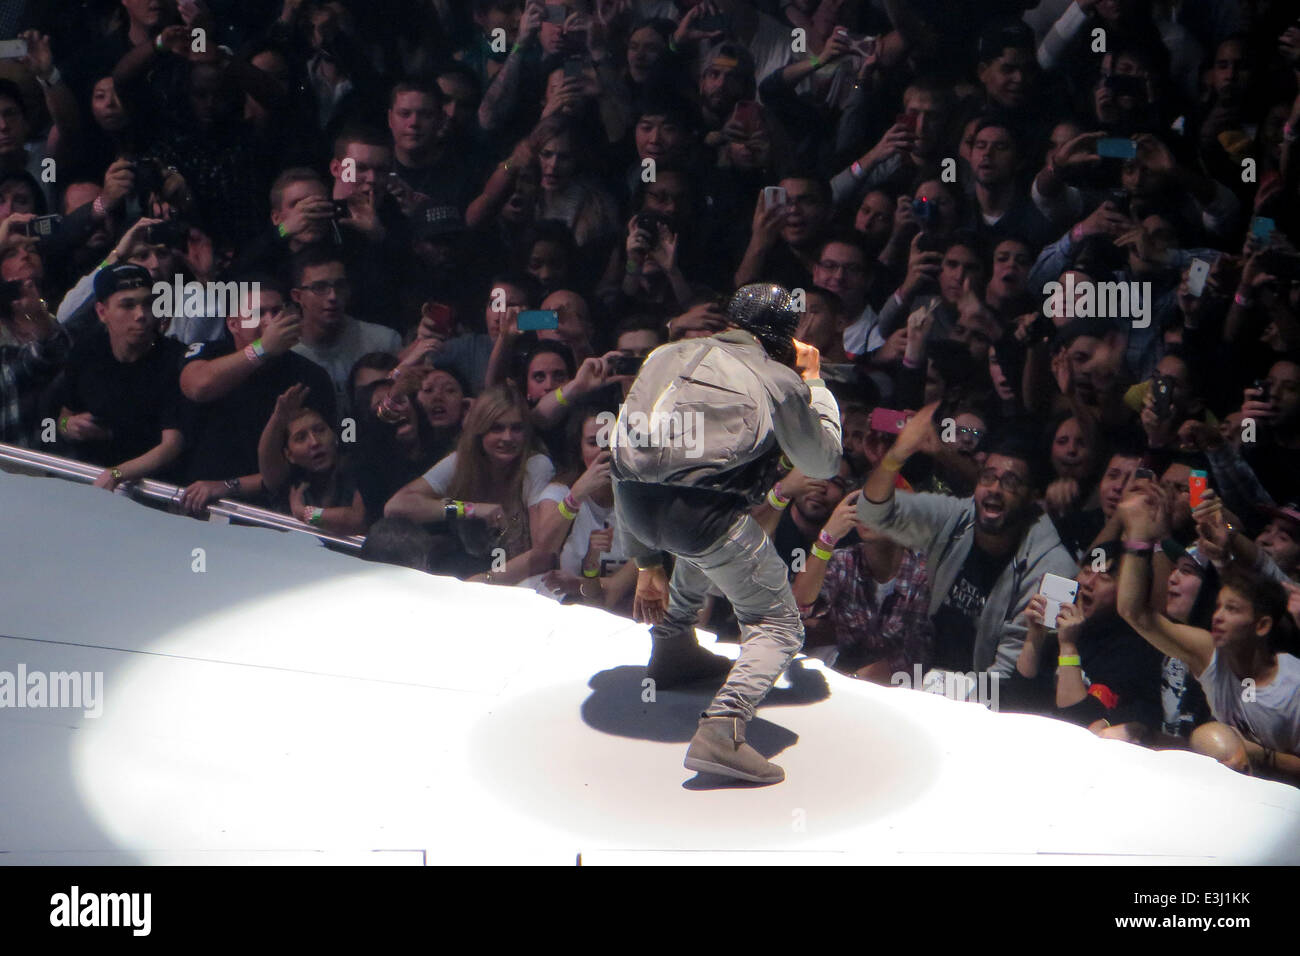 Amazing Kanye West Performs To A Sold Out Crowd At Madison Square Garden As Part Of  His U0027Yeezusu0027 Tour. The Eccentric Rapper Performed The Entire Concert  Wearing A ...